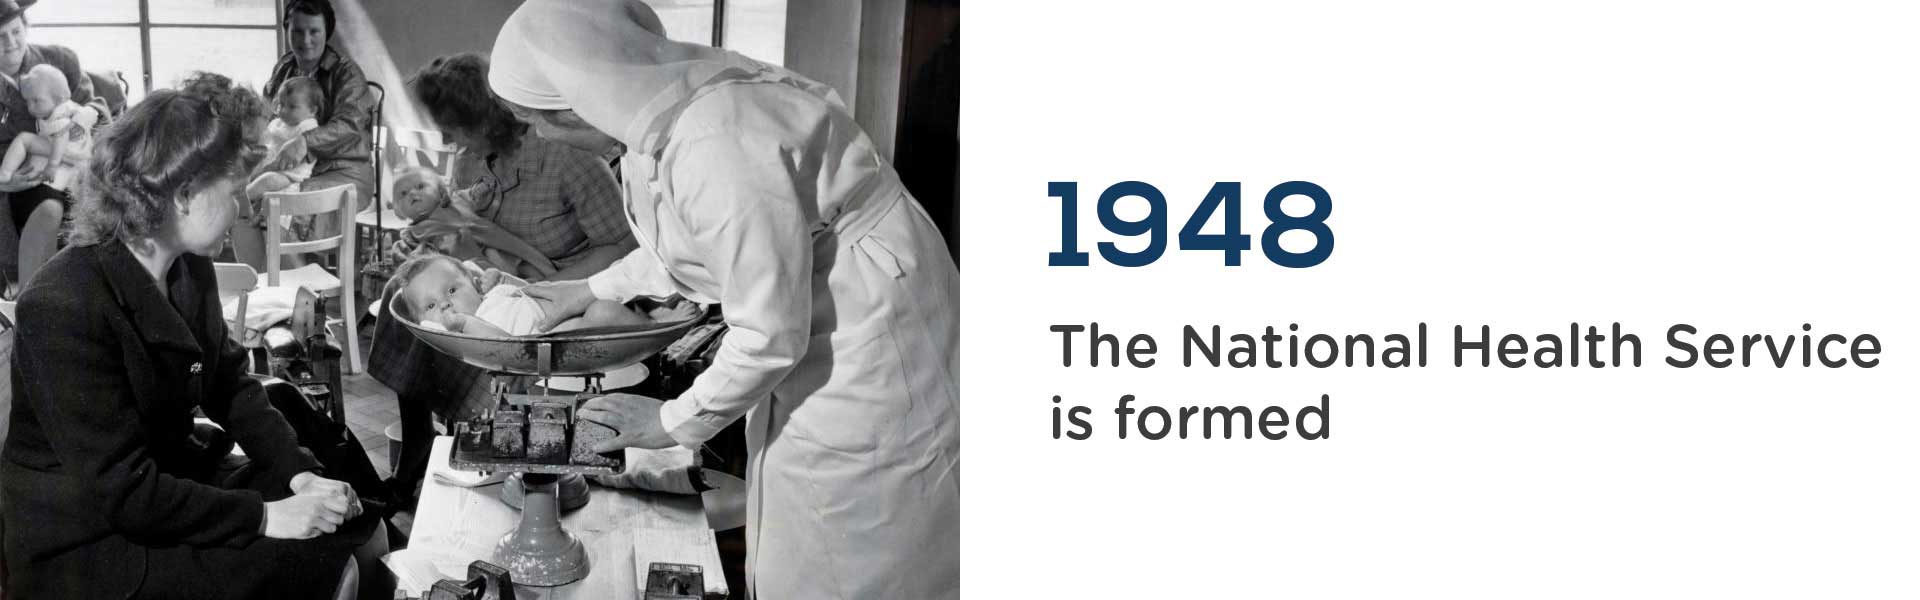 in 1948 the NHS (National Health Service) was formed.Wrigley Claydon Solicitors, Trusted for 200 years